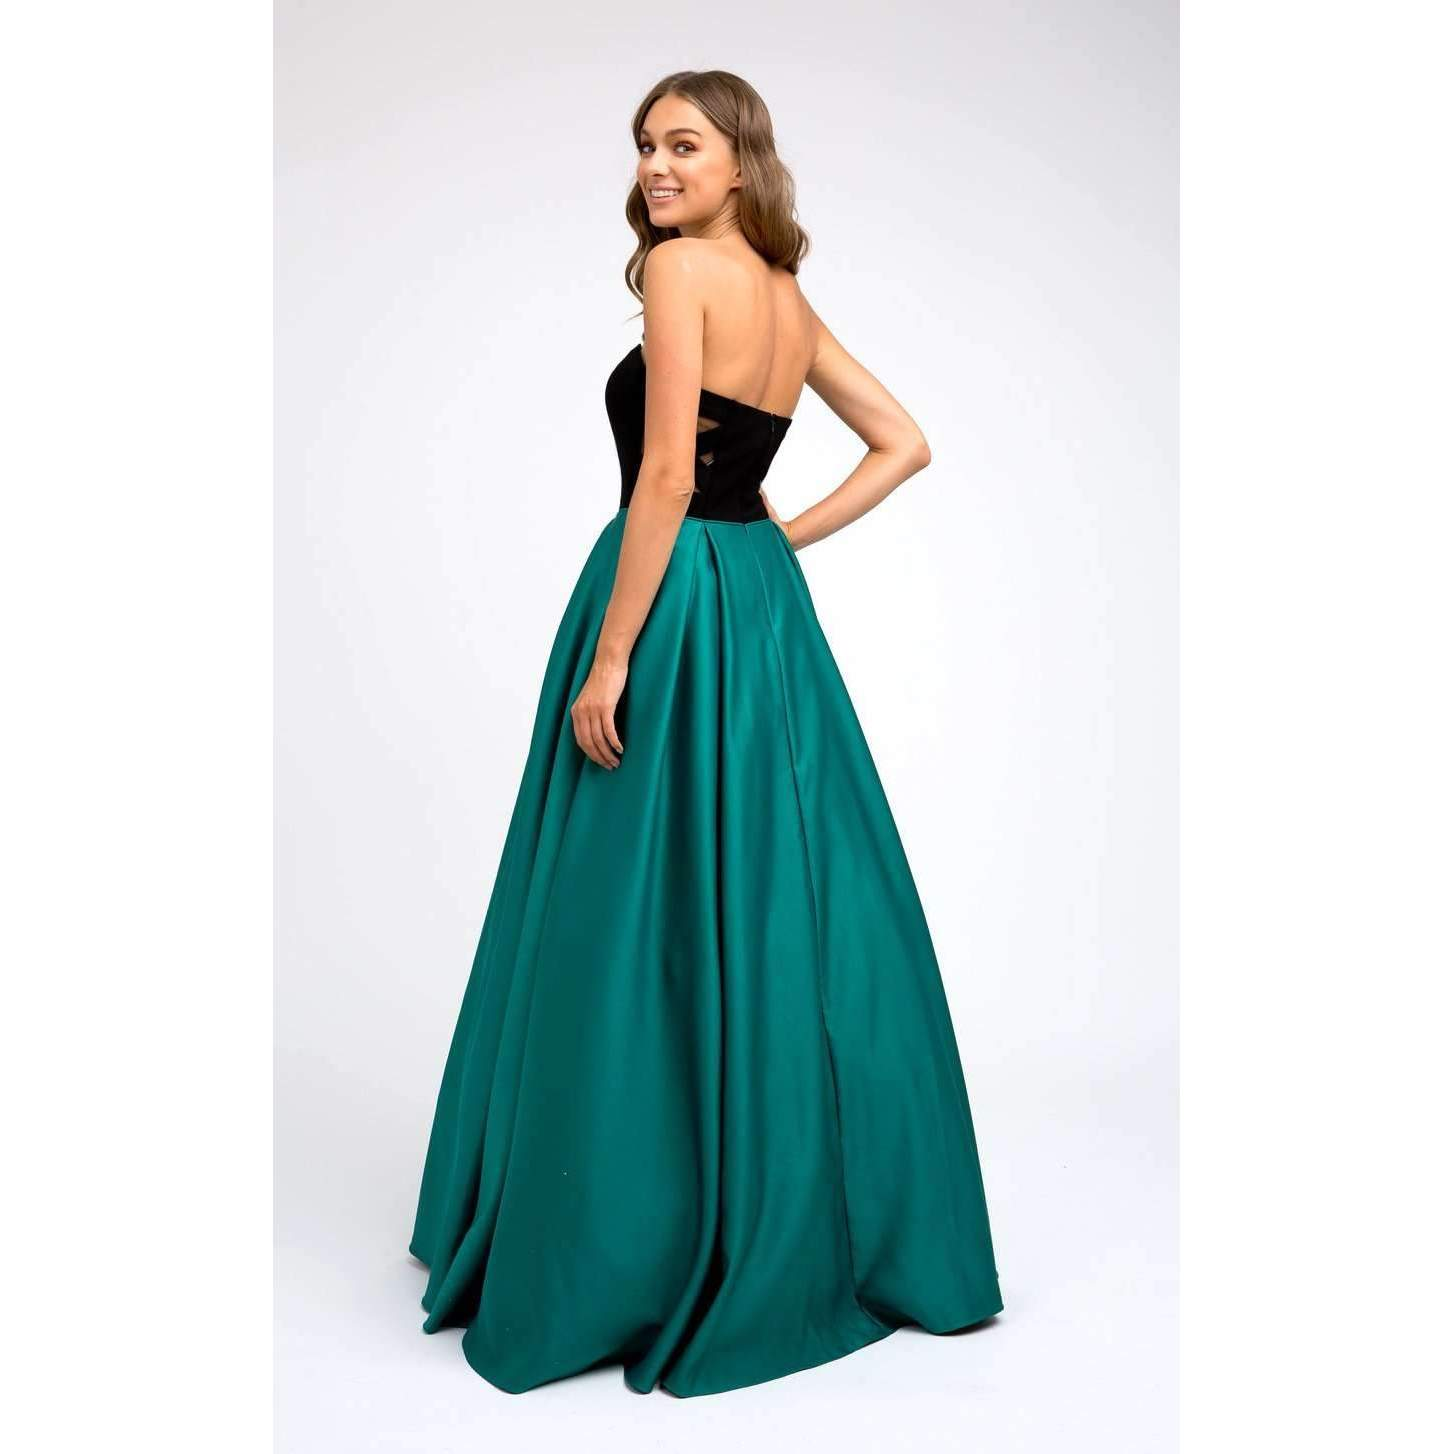 Two Tone Sweetheart Ball Gown Style Prom Dress 694 - Julietdresses